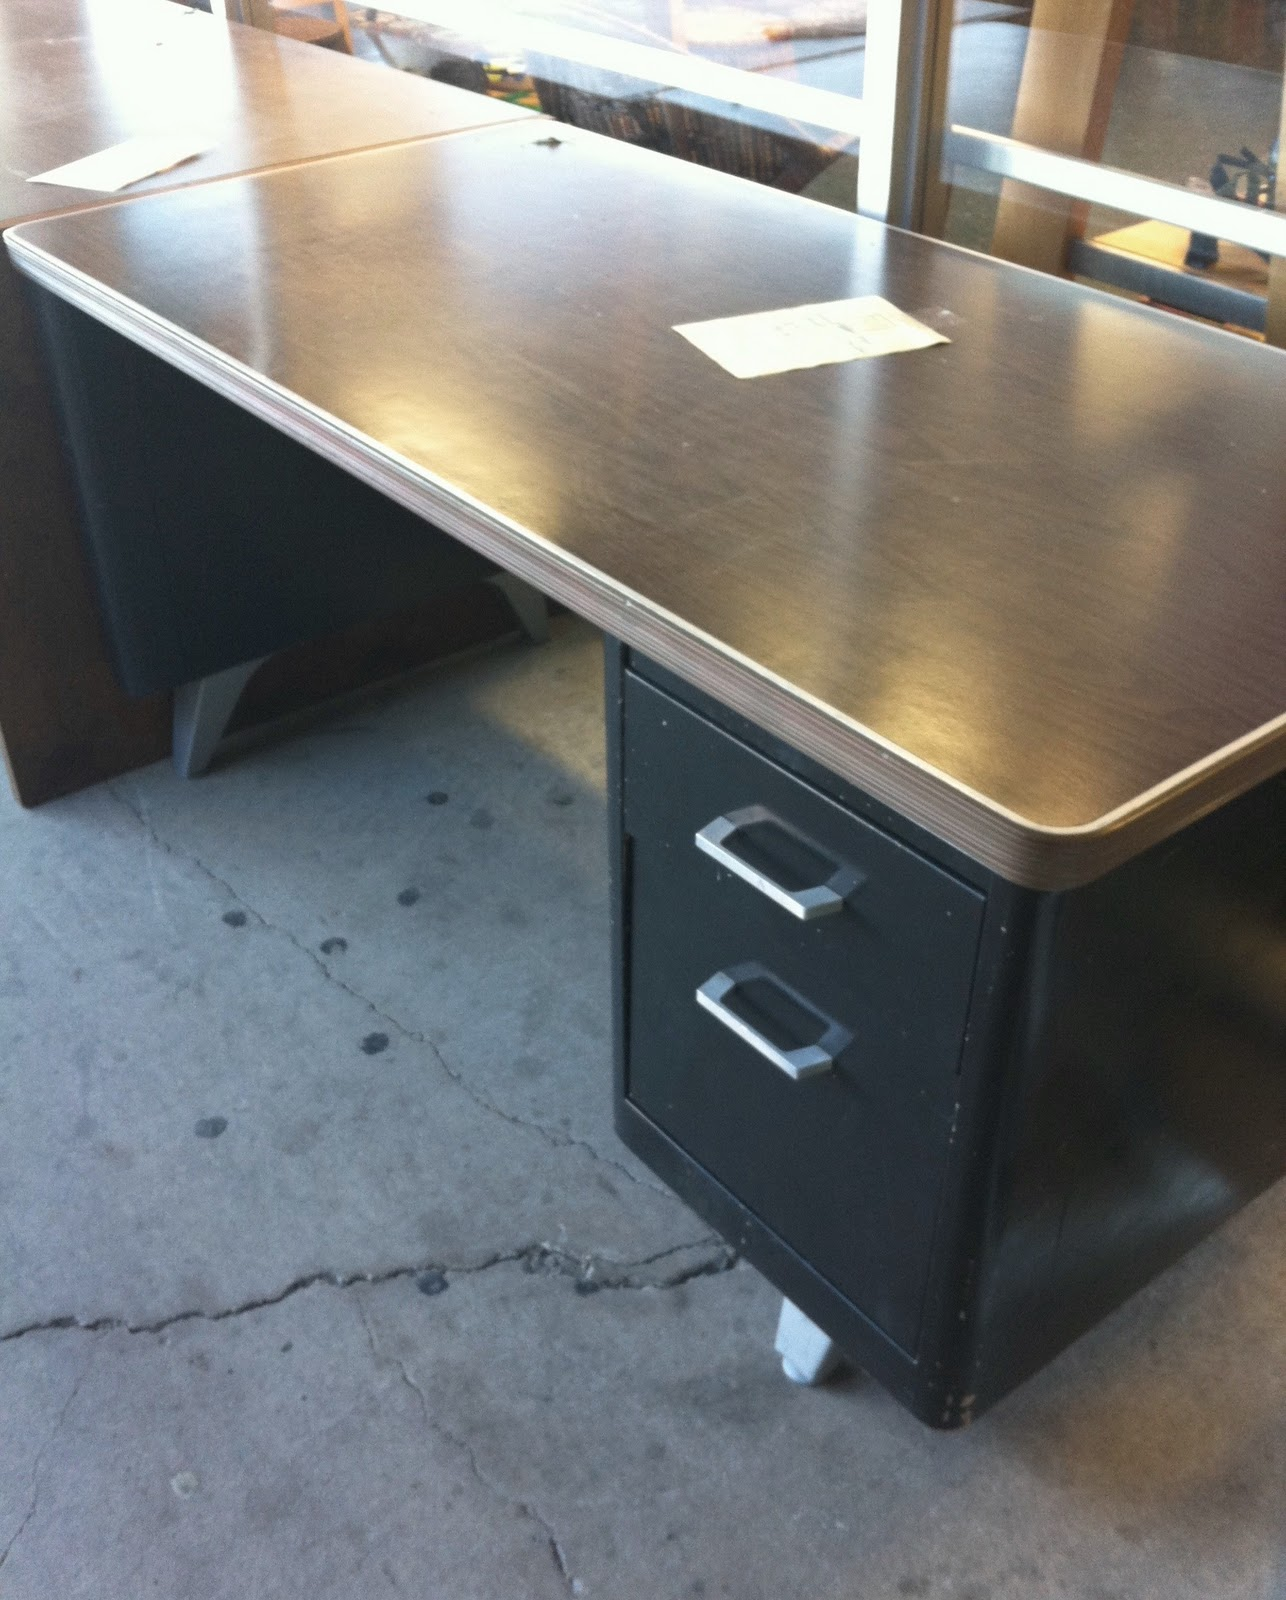 Uncategorized Vintage Steel Tanker Desk katherine paige creates vintage steel tanker it it